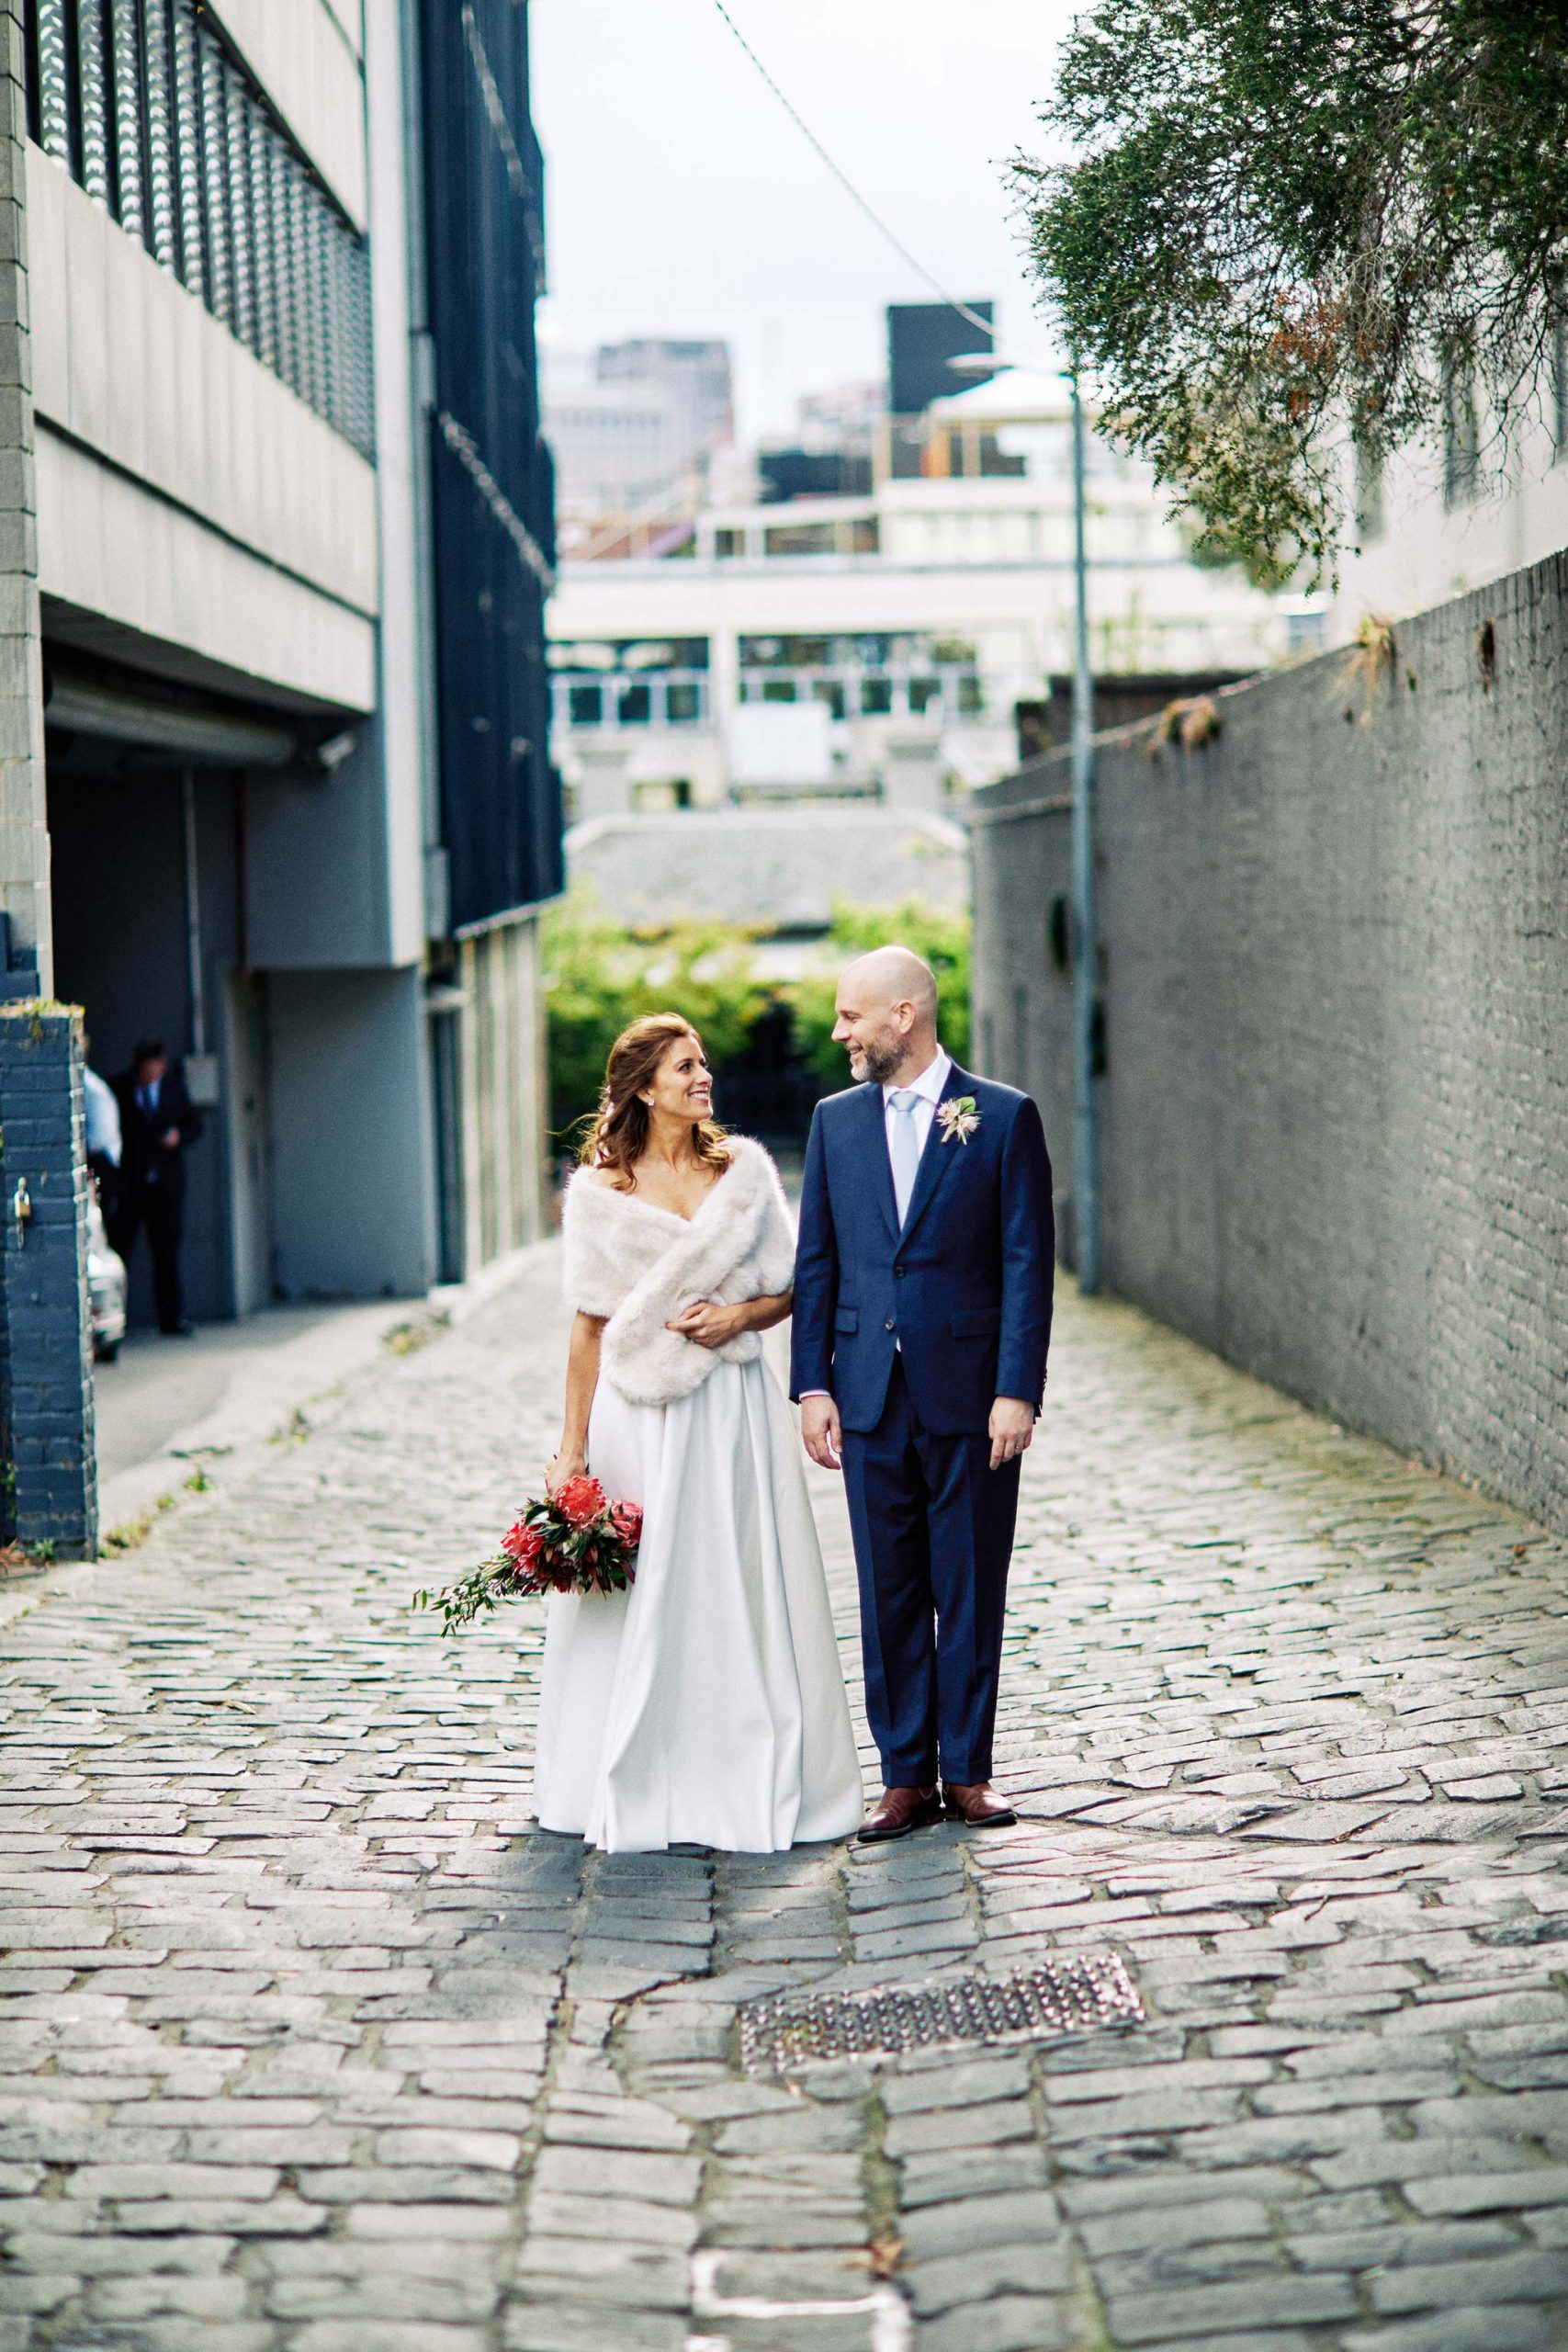 East Melbourne wedding couple alleyway